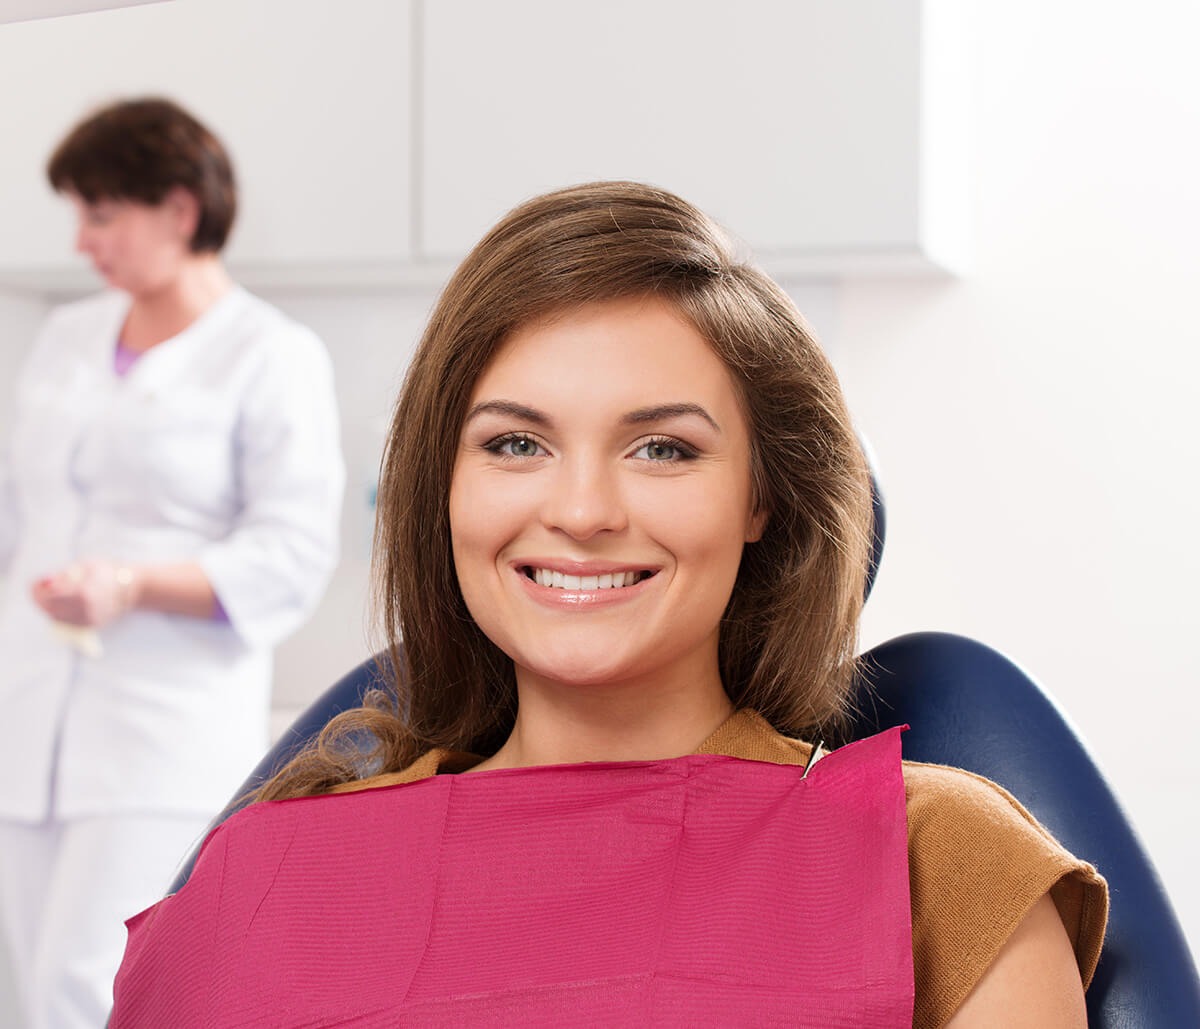 Dentist in Burlington, on Area Offering Quality, Safe Cosmetic Dentist Services